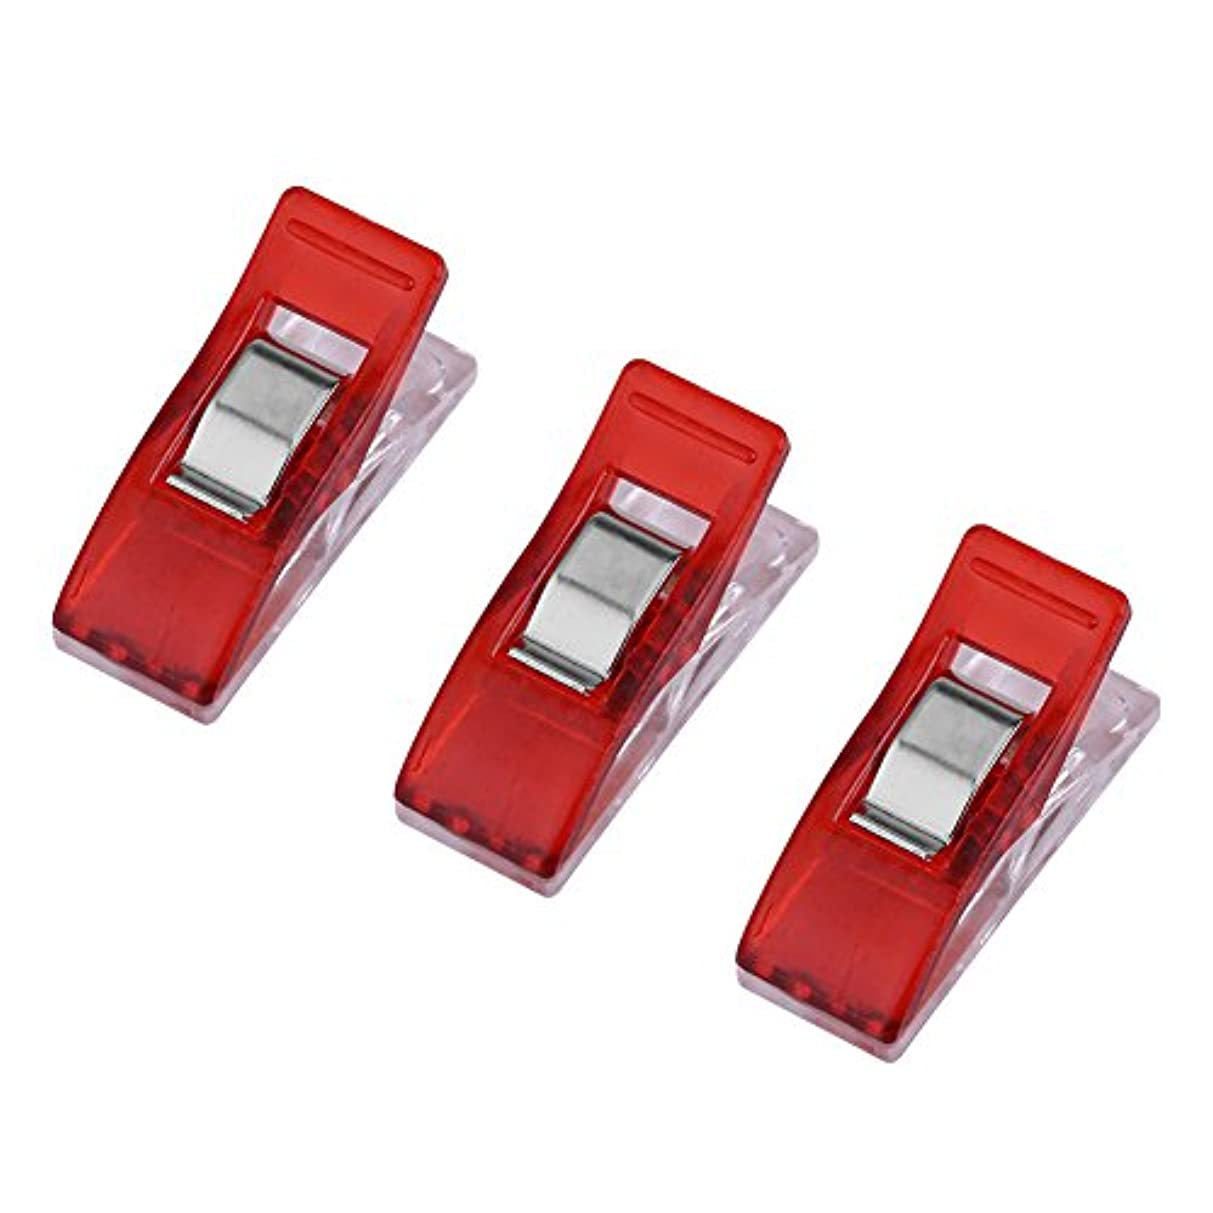 Mini Wonder Clips,Multipurpose Sewing Quilting Binding Clips for Office and Craft Projects.(Red)